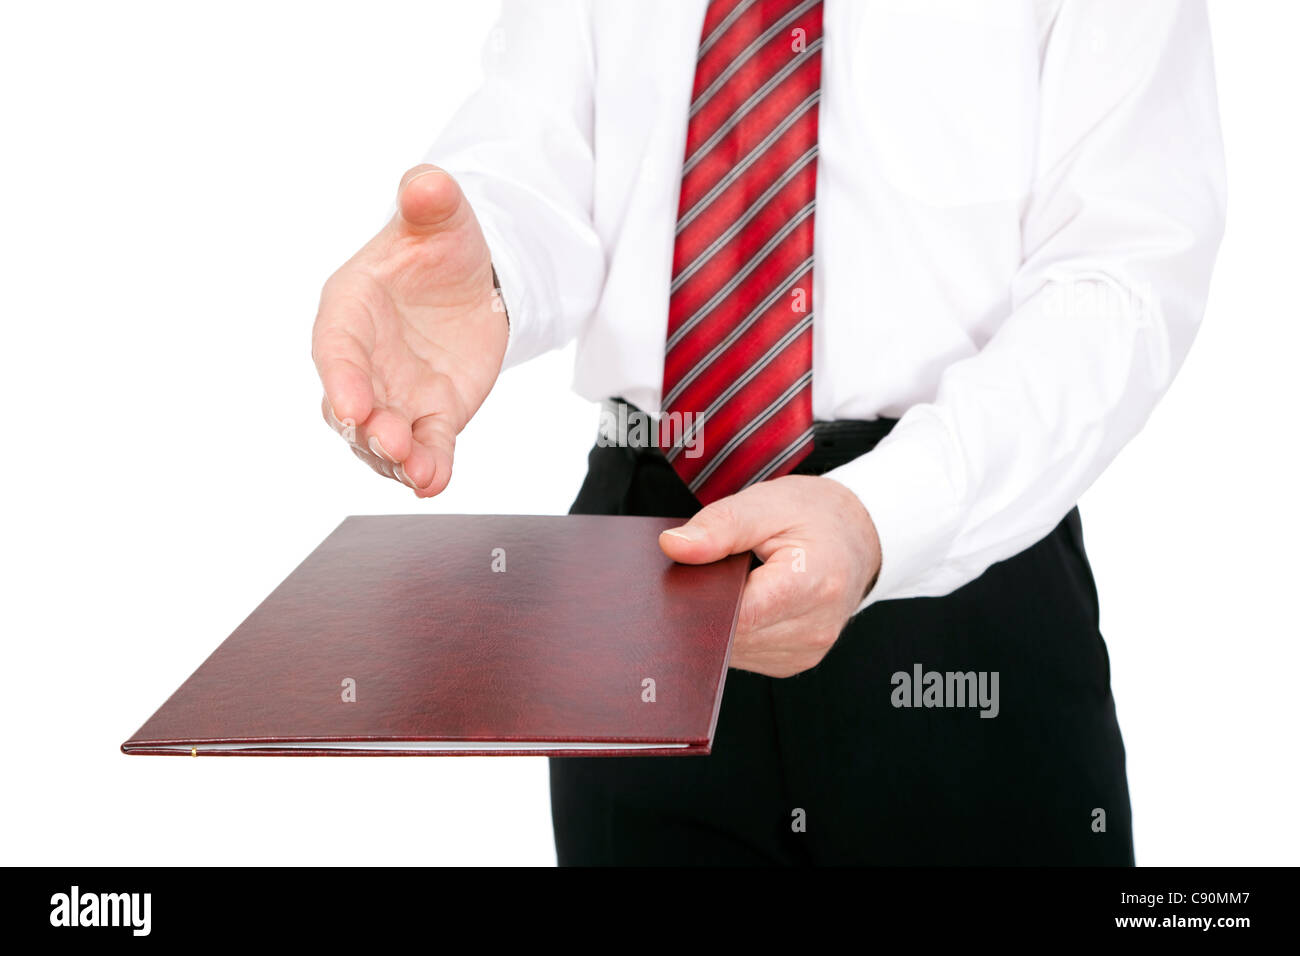 man passes document of second person on white background - Stock Image